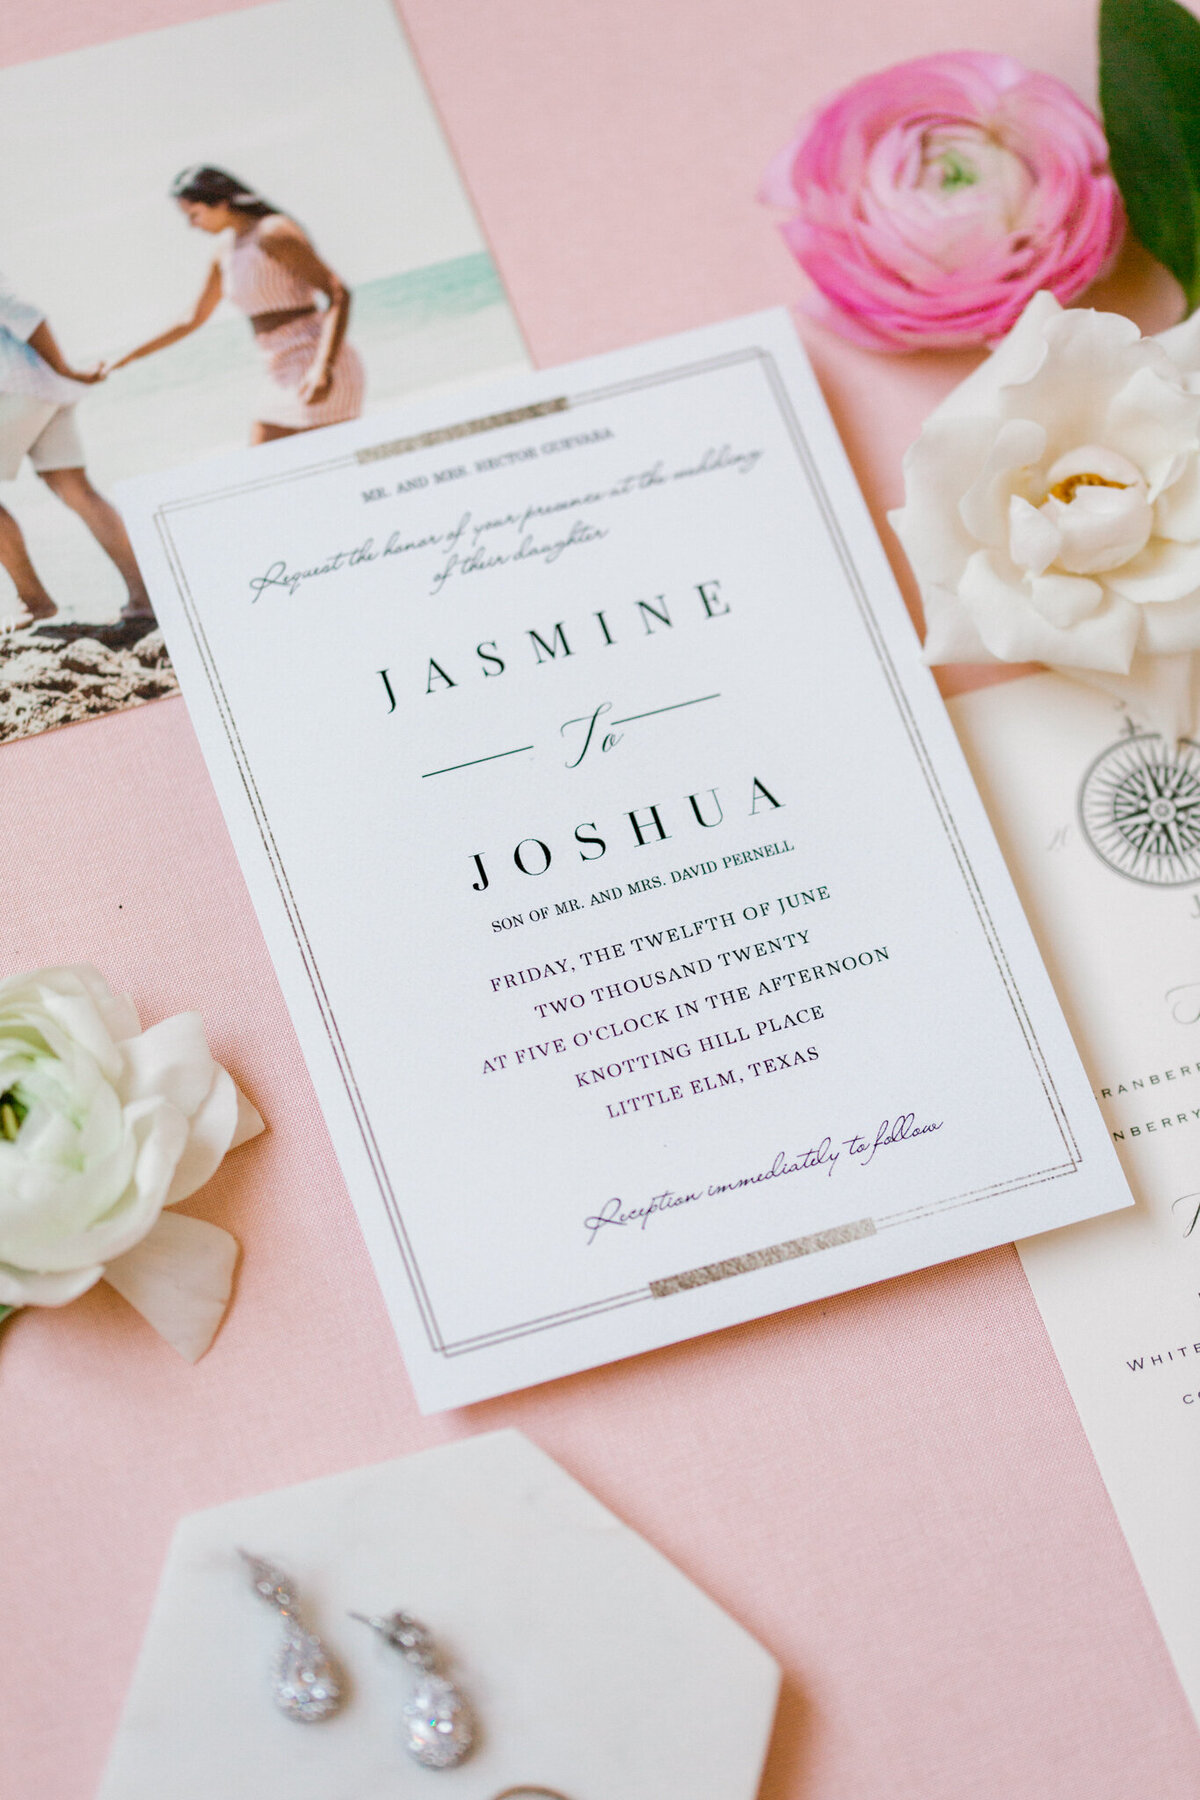 Jasmine & Josh Wedding at Knotting Hill Place | Dallas DFW Wedding Photographer | Sami Kathryn Photography-21